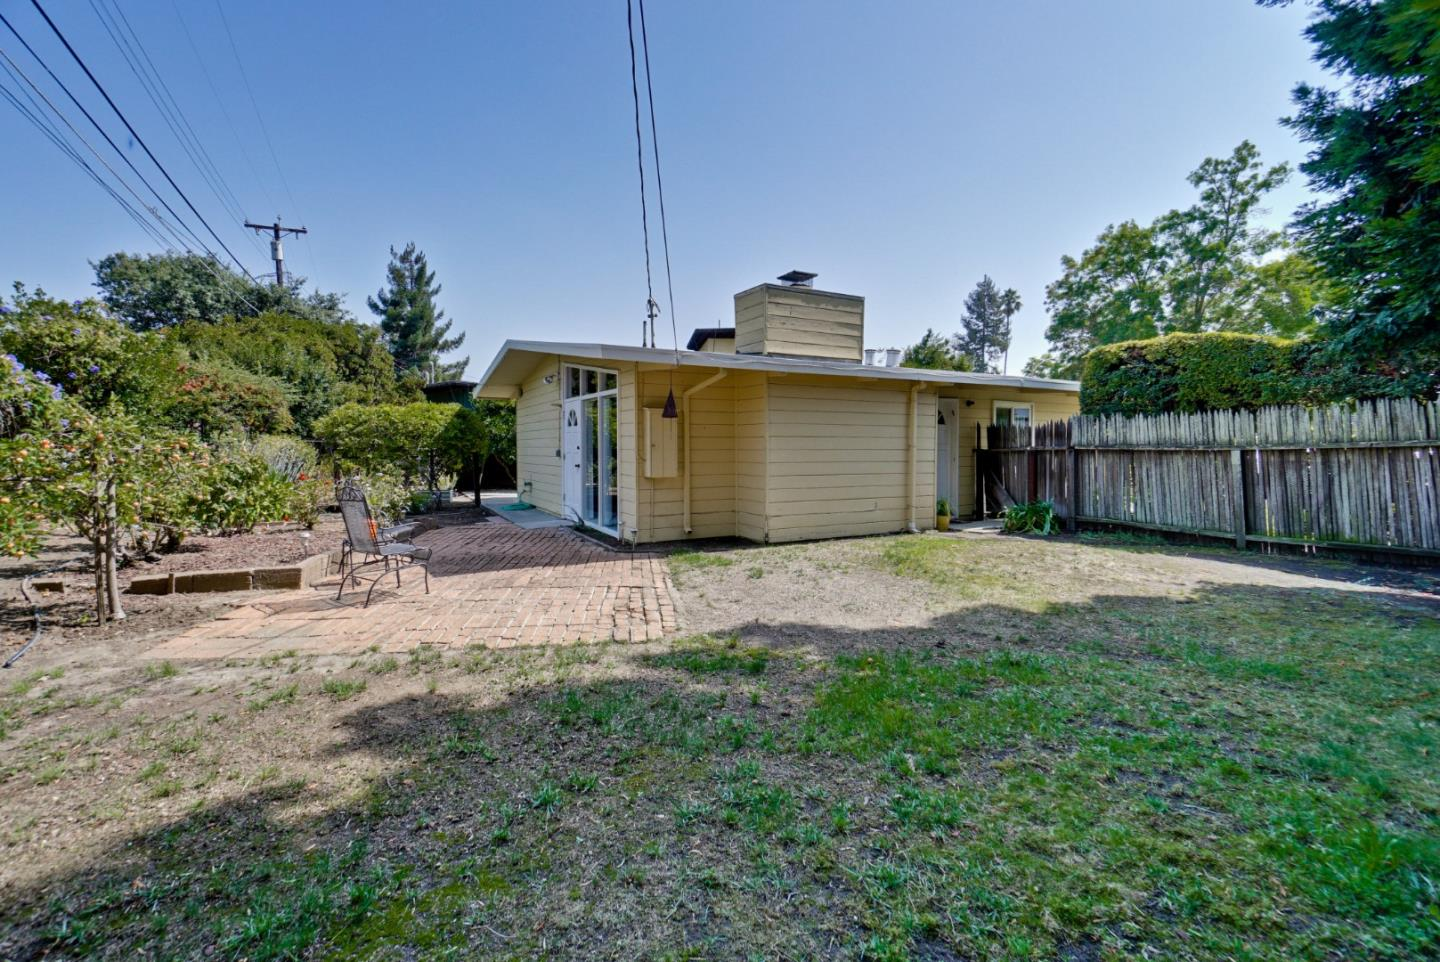 411 Maureen Avenue Palo Alto, CA 94306 - MLS #: ML81722068